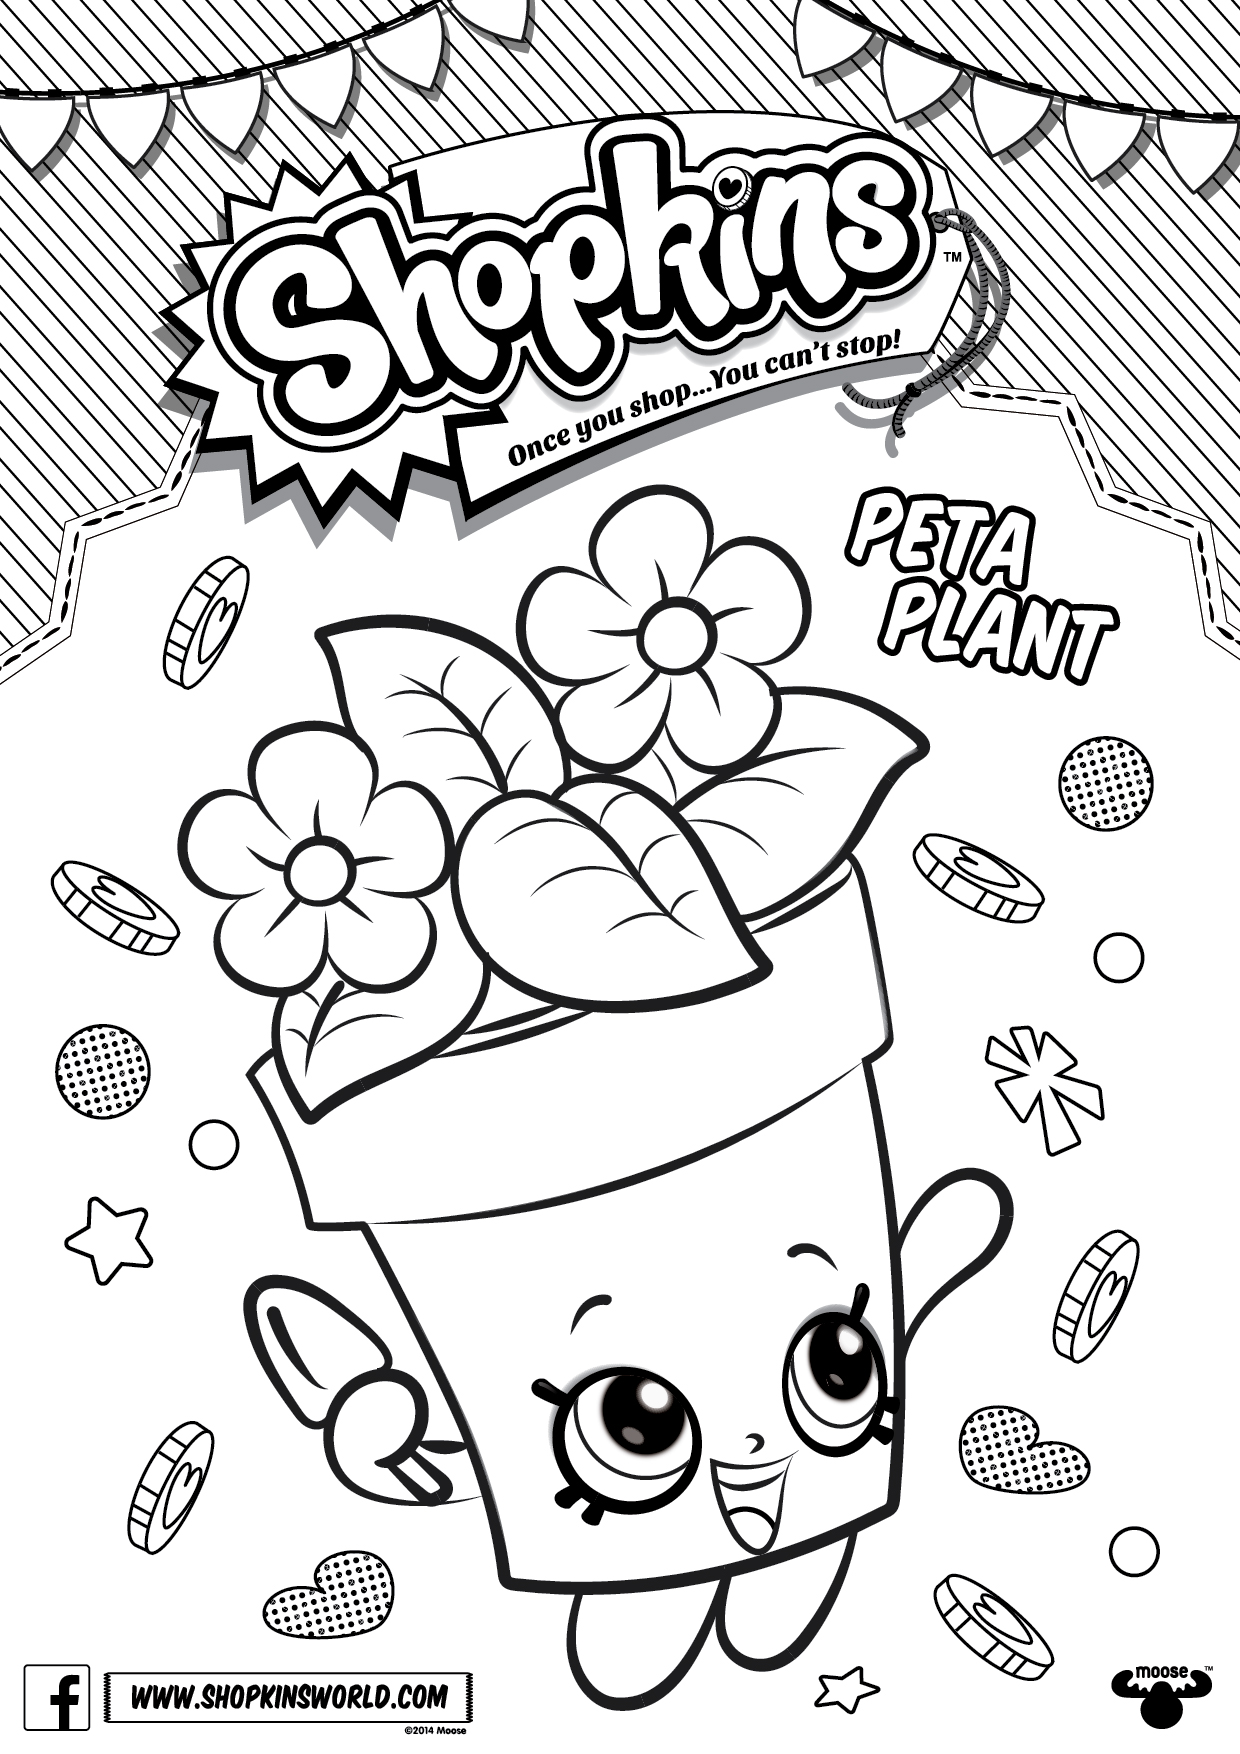 Shopkins Coloring Pages 4 Diy Craft Ideas Gardening